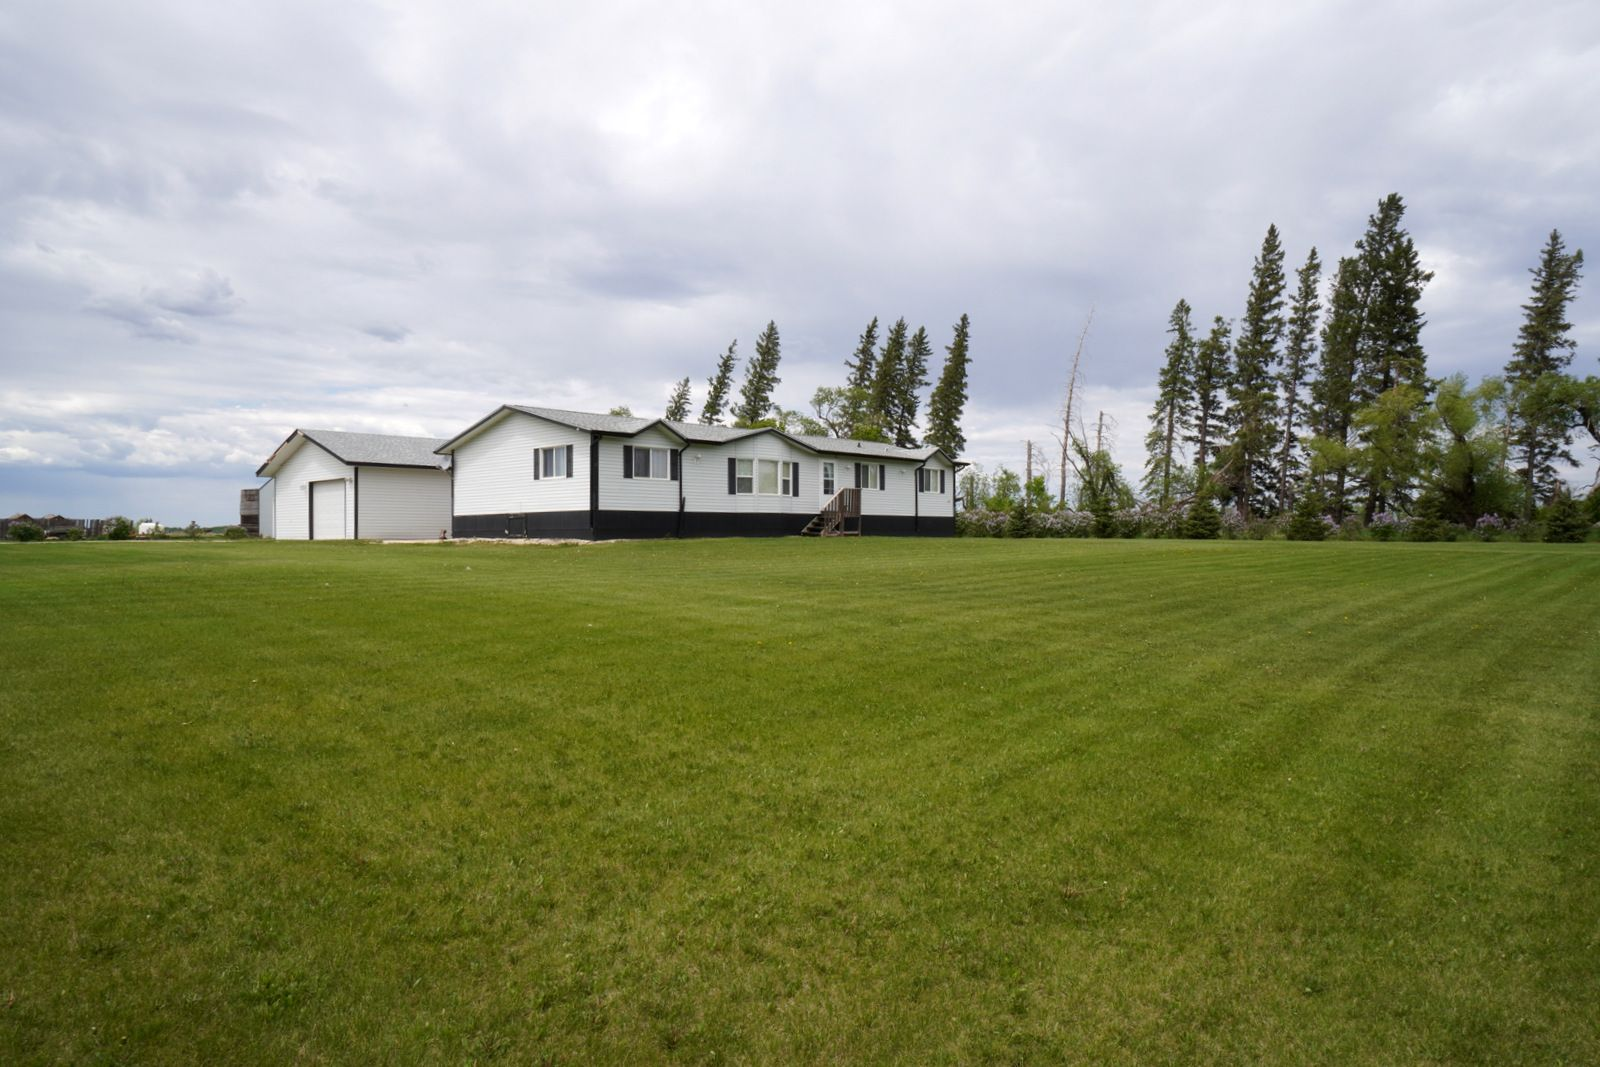 Main Photo: 45098 McCreery Road in Treherne: House for sale : MLS®# 202113735